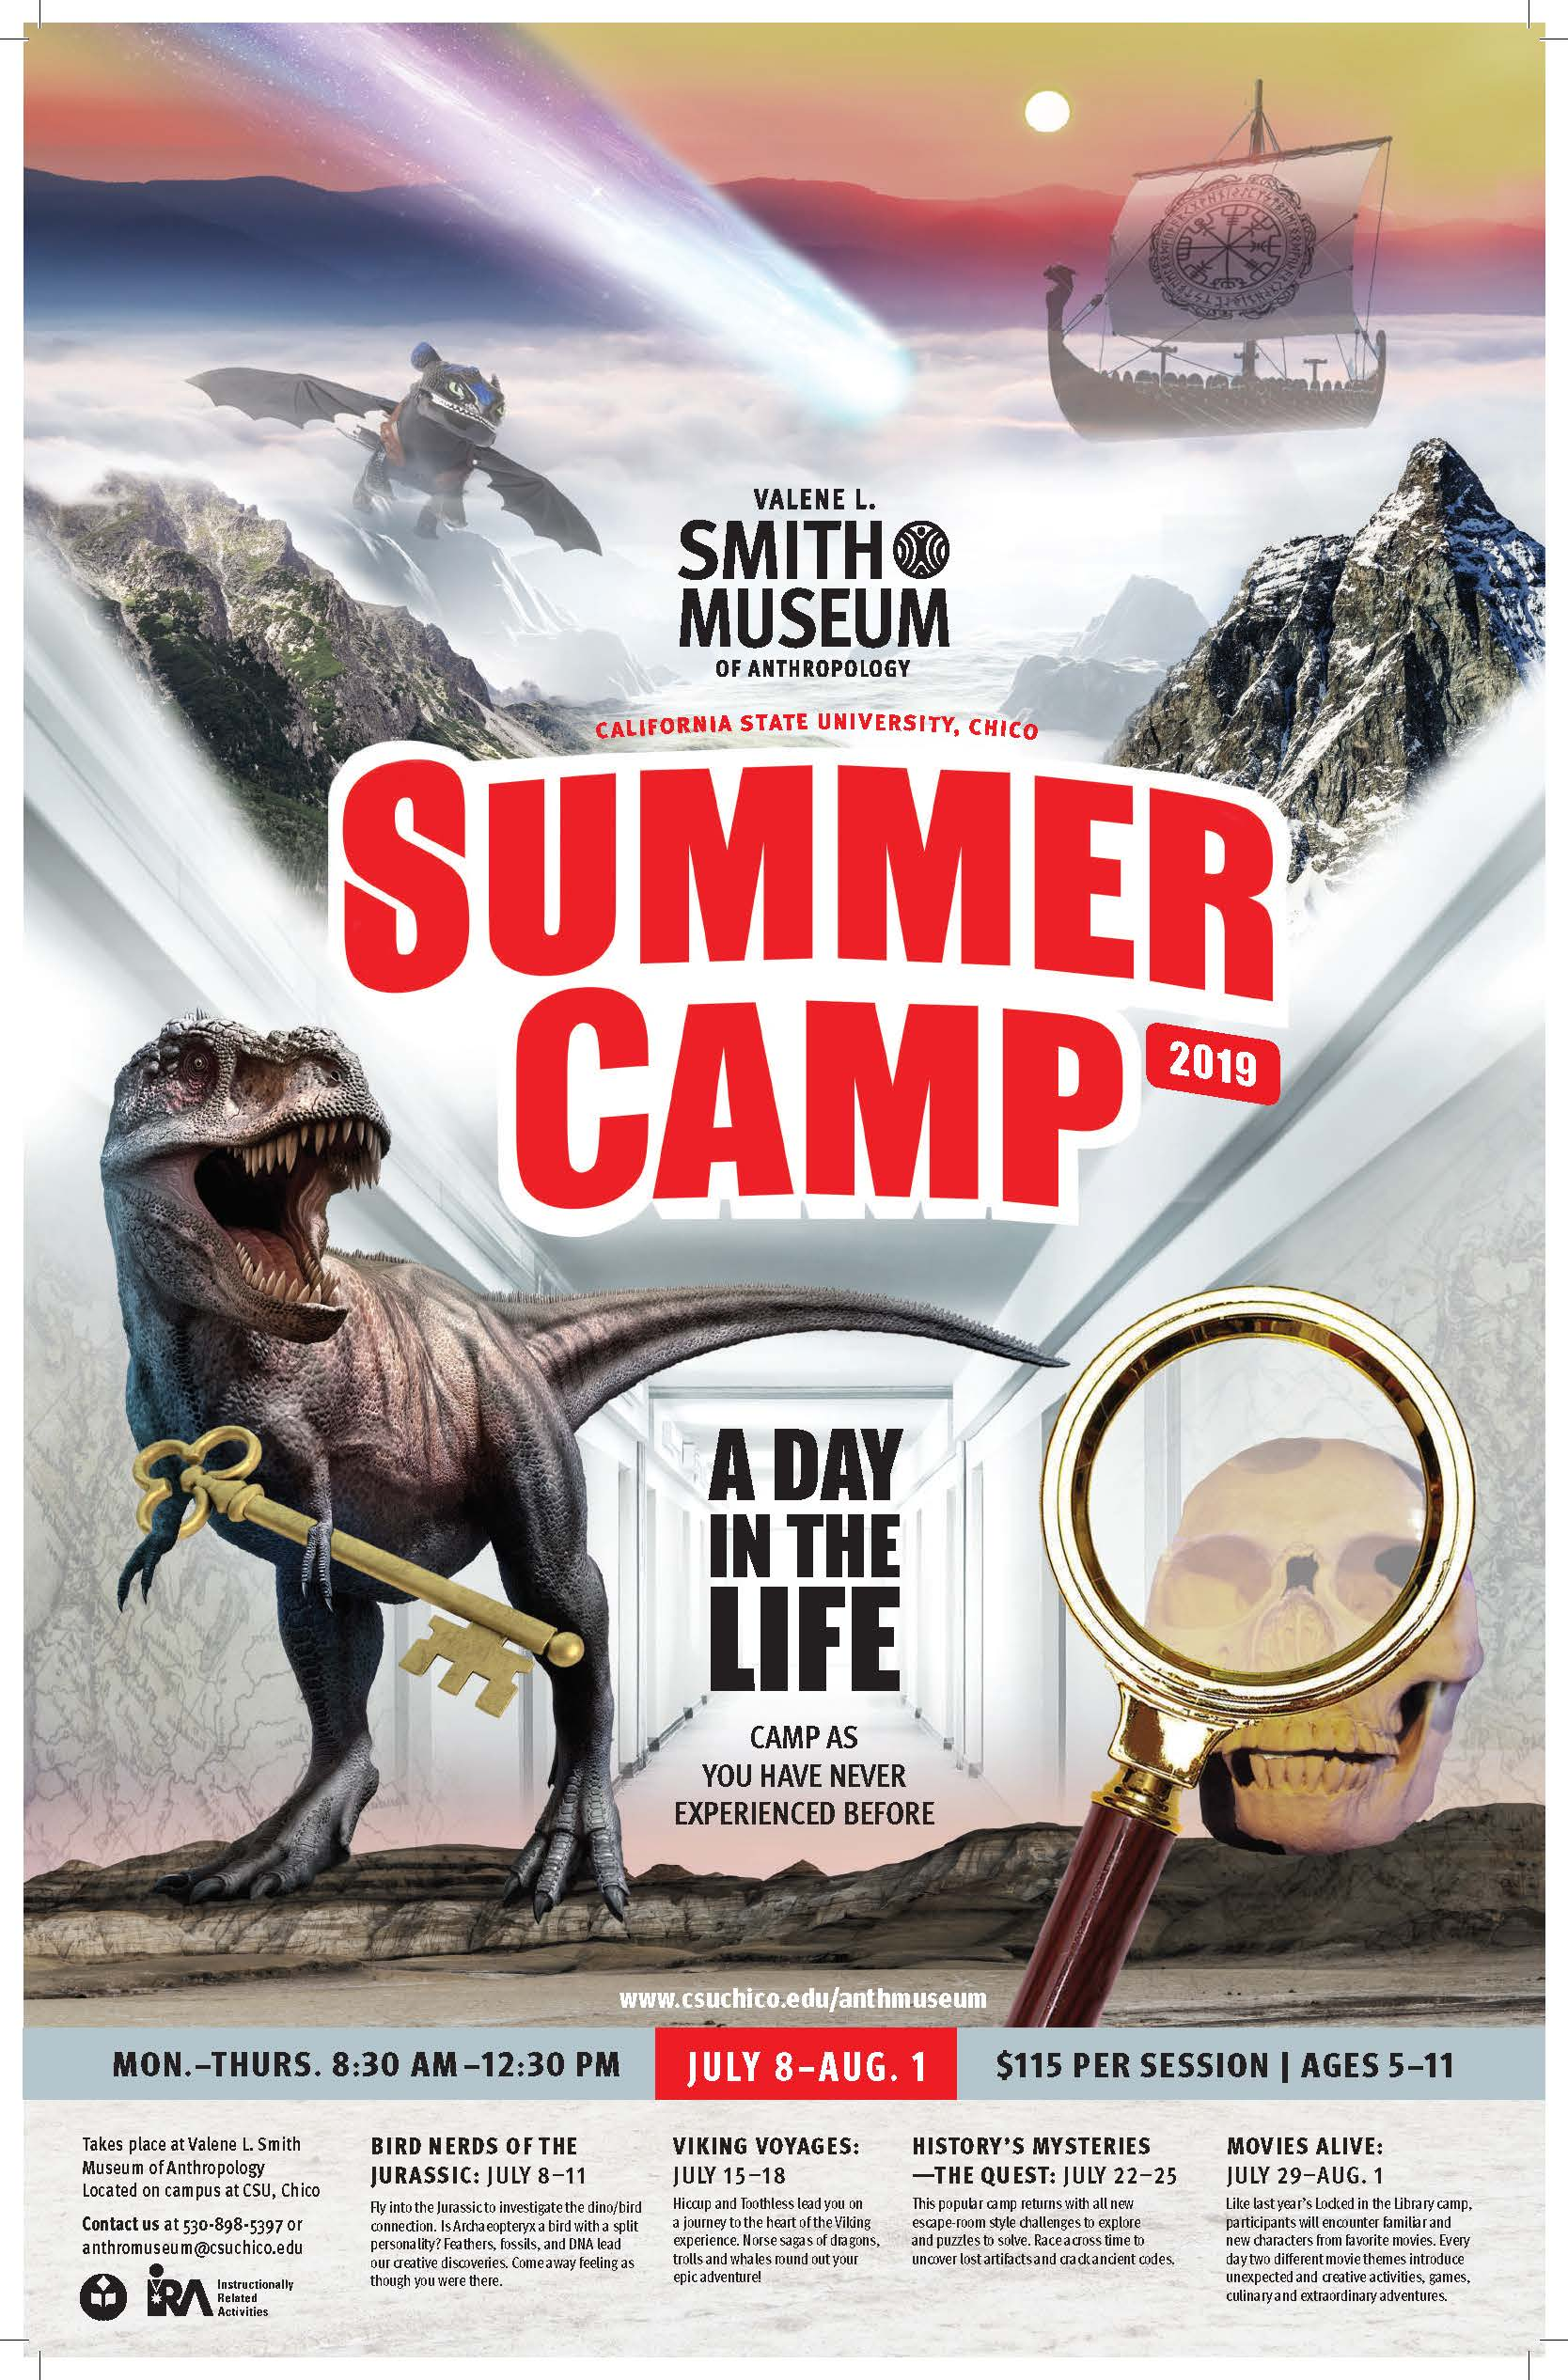 Summer Camp 2019 Movies Alive Valene L Smith Museum Of Anthropology Csu Chico